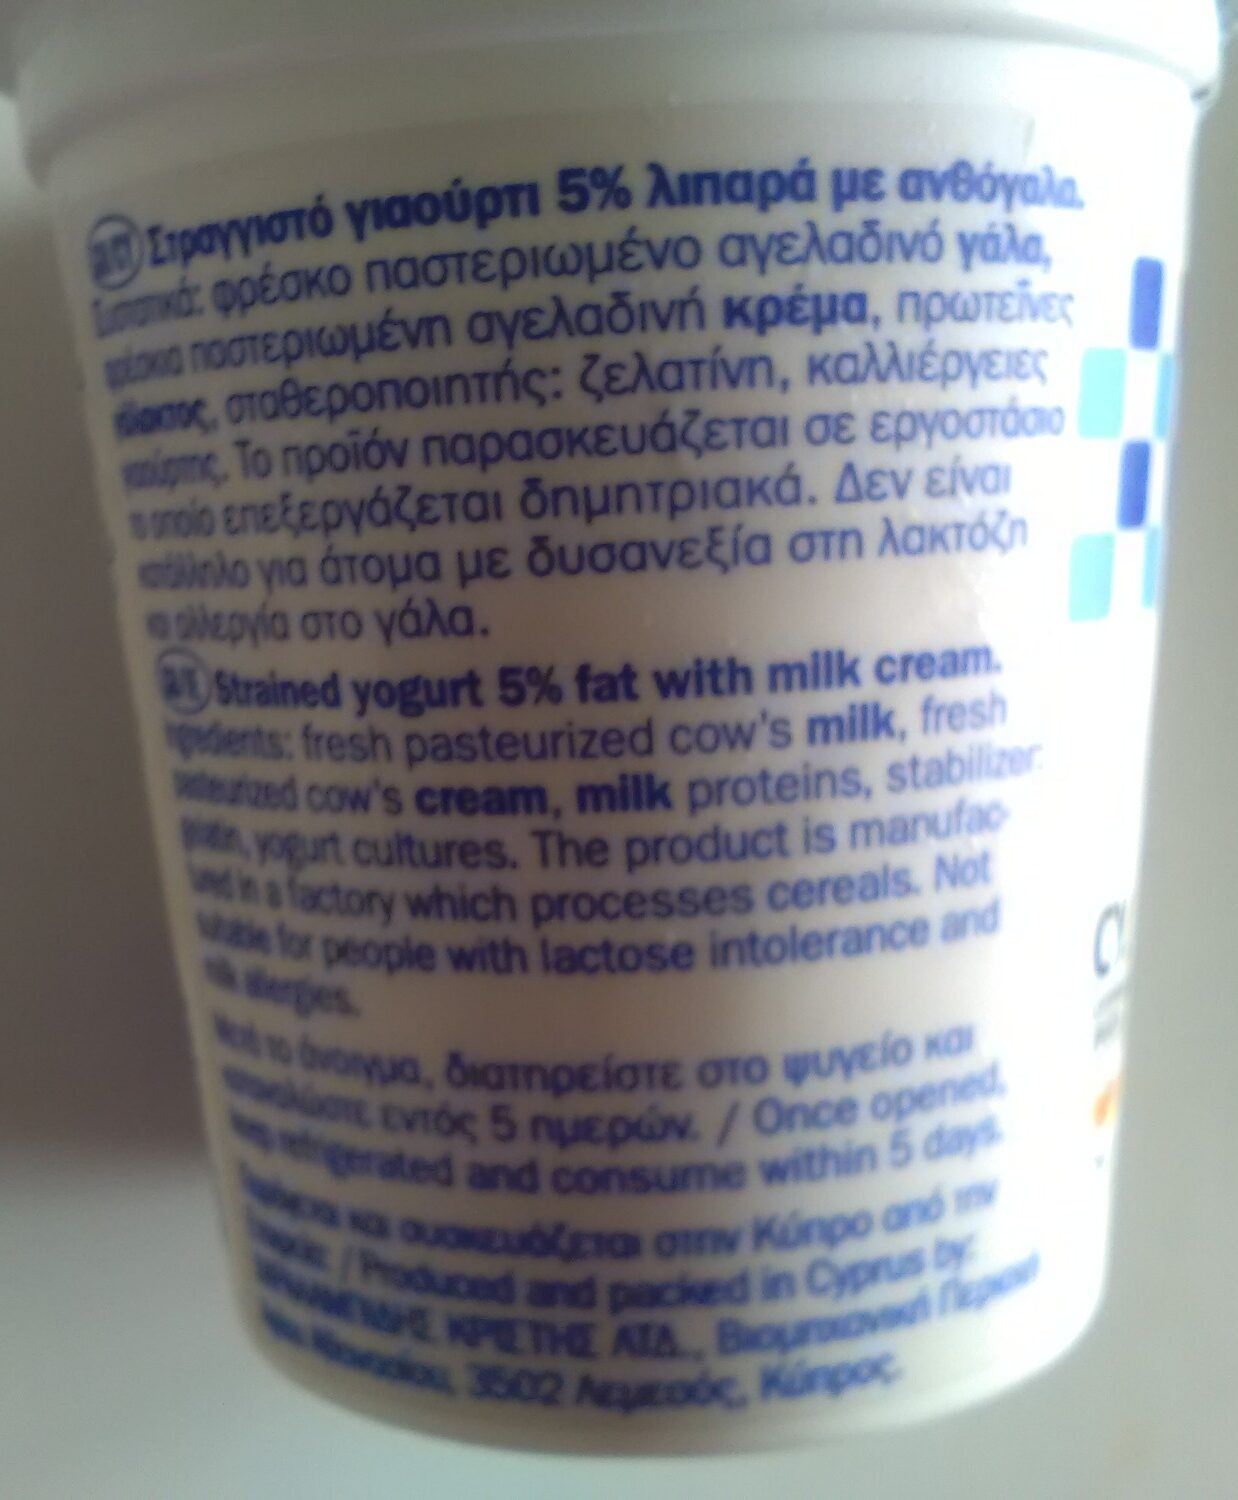 Strained yoghurt 5% - Προϊόν - en